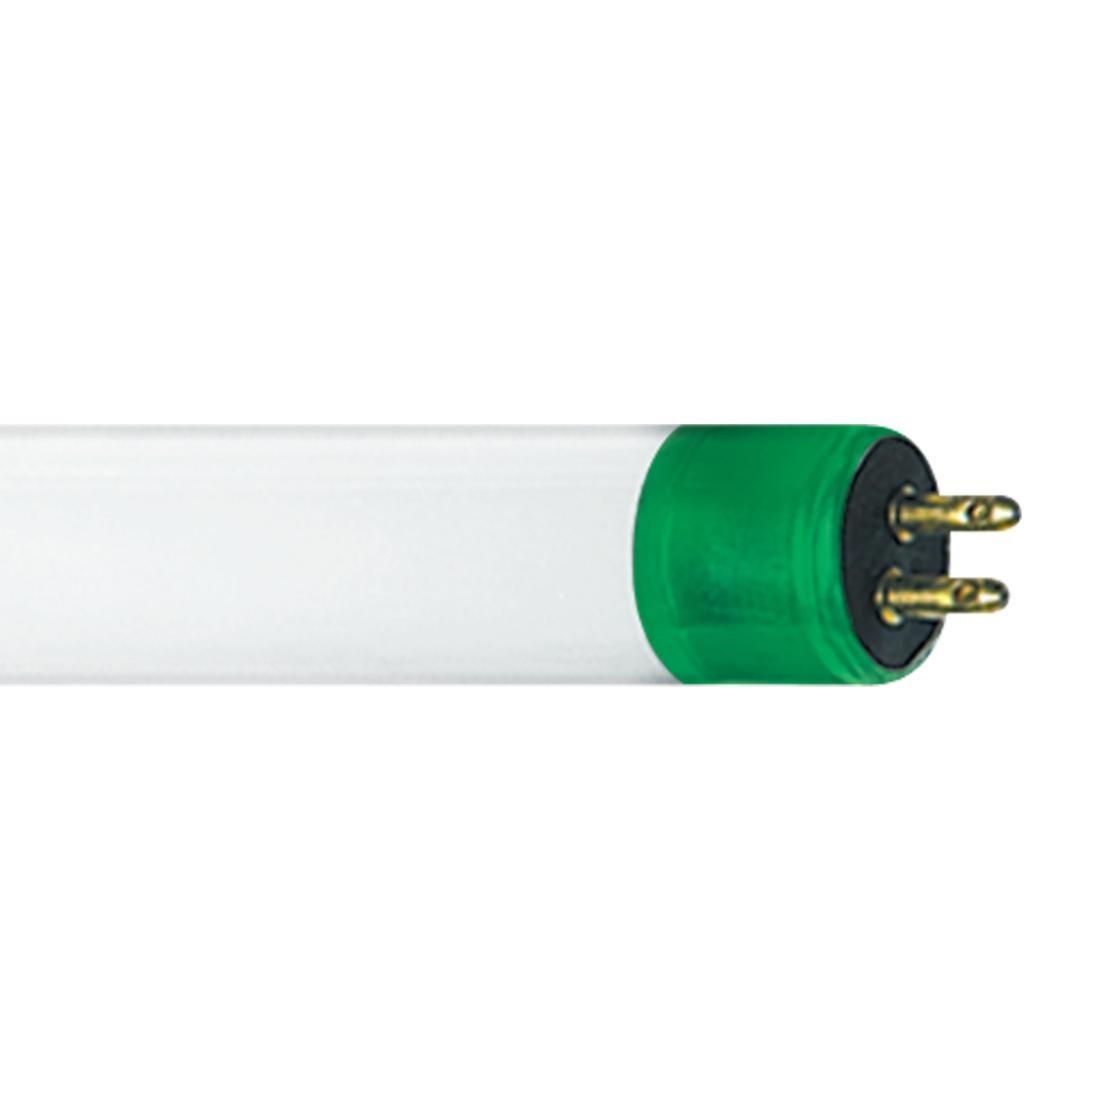 "Philips 49 Watt 46"" T5 Linear Fluorescent 4100K 85 CRI Miniature Bipin (G5) Base High Output Tube (F54T5/841/HO/EA/ALTO/49W)"